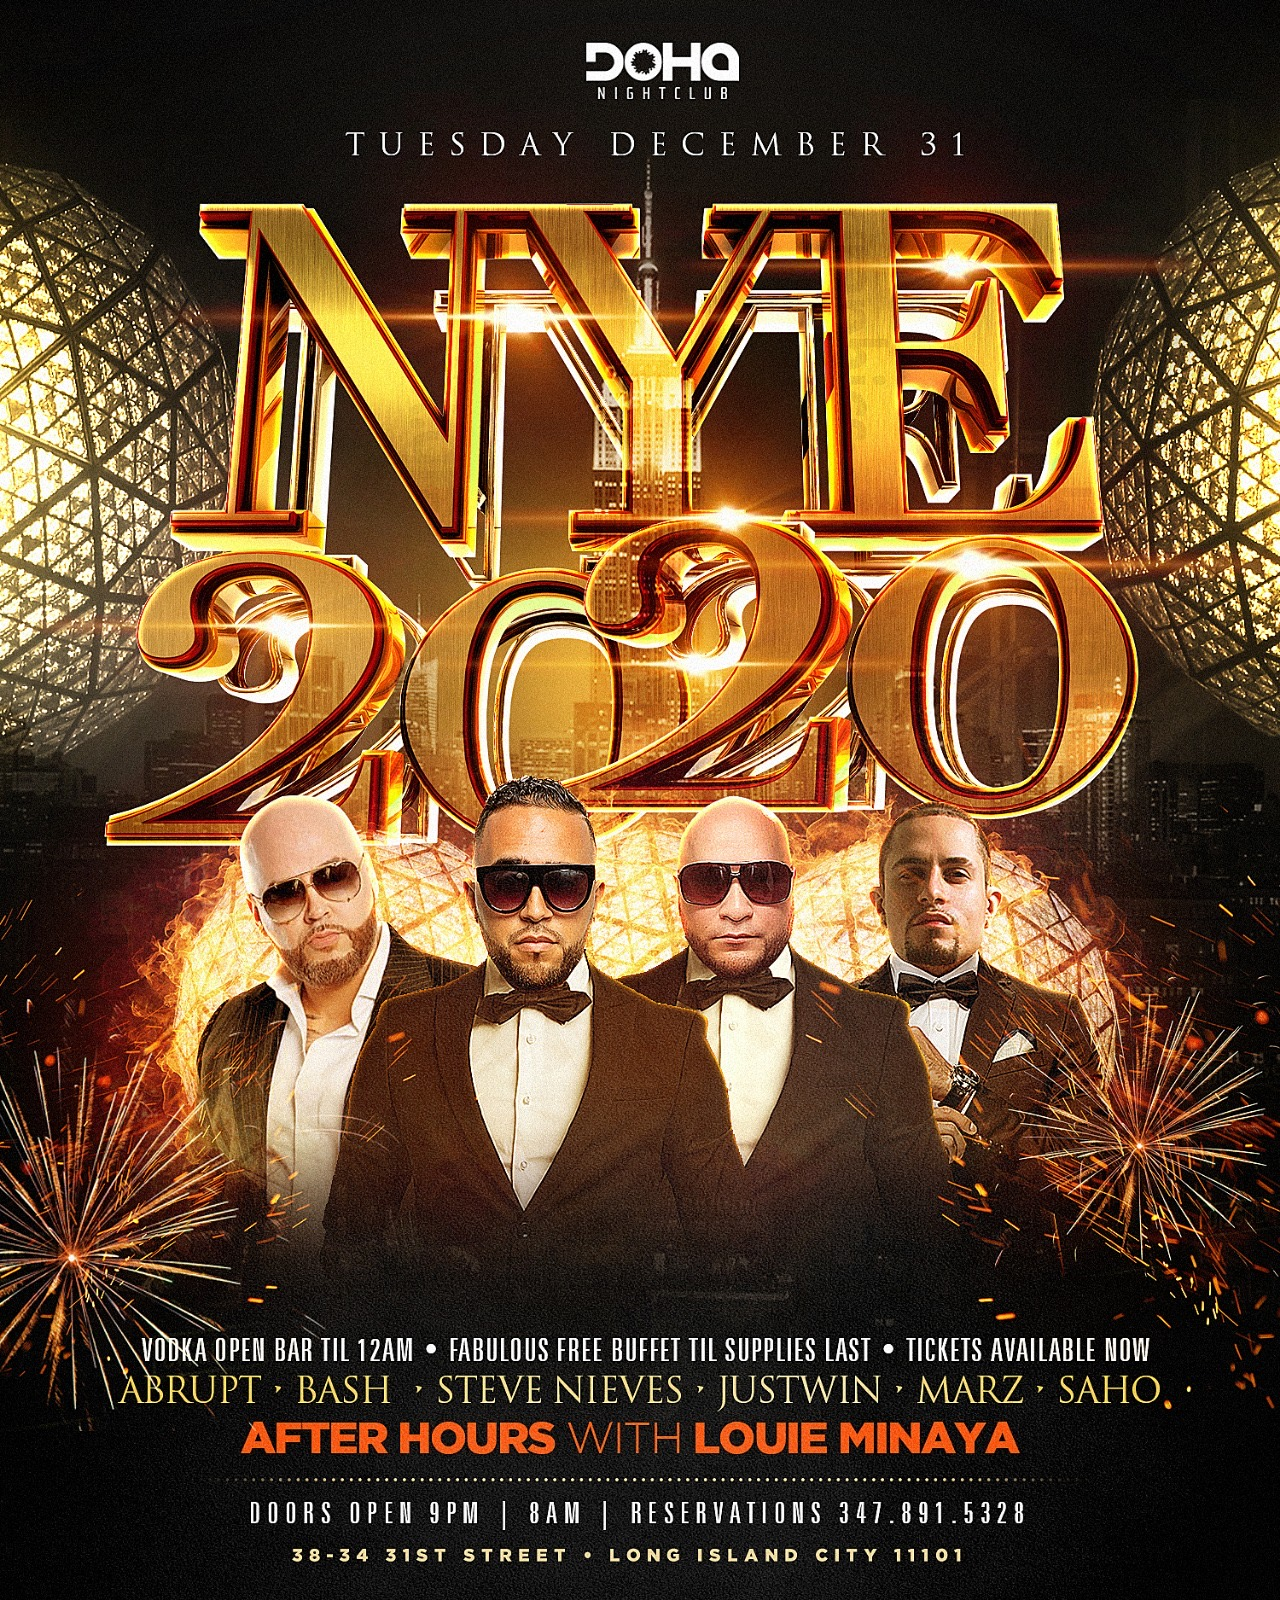 New Years Eve at Doha Nightclub NYC